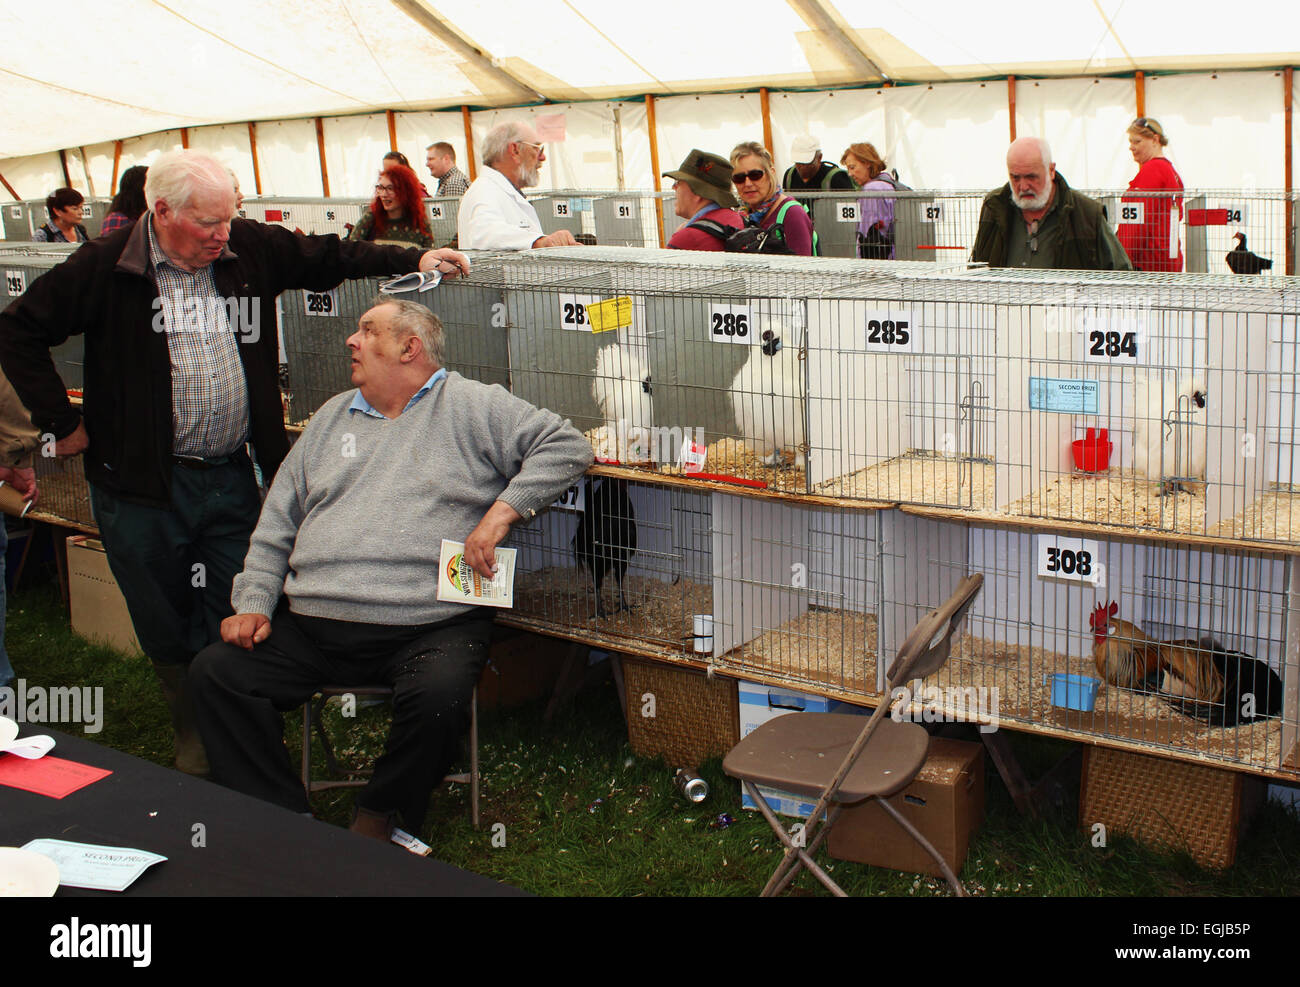 Two poultry breeders talking next to competition entrants at the Northumberland County Show - Stock Image